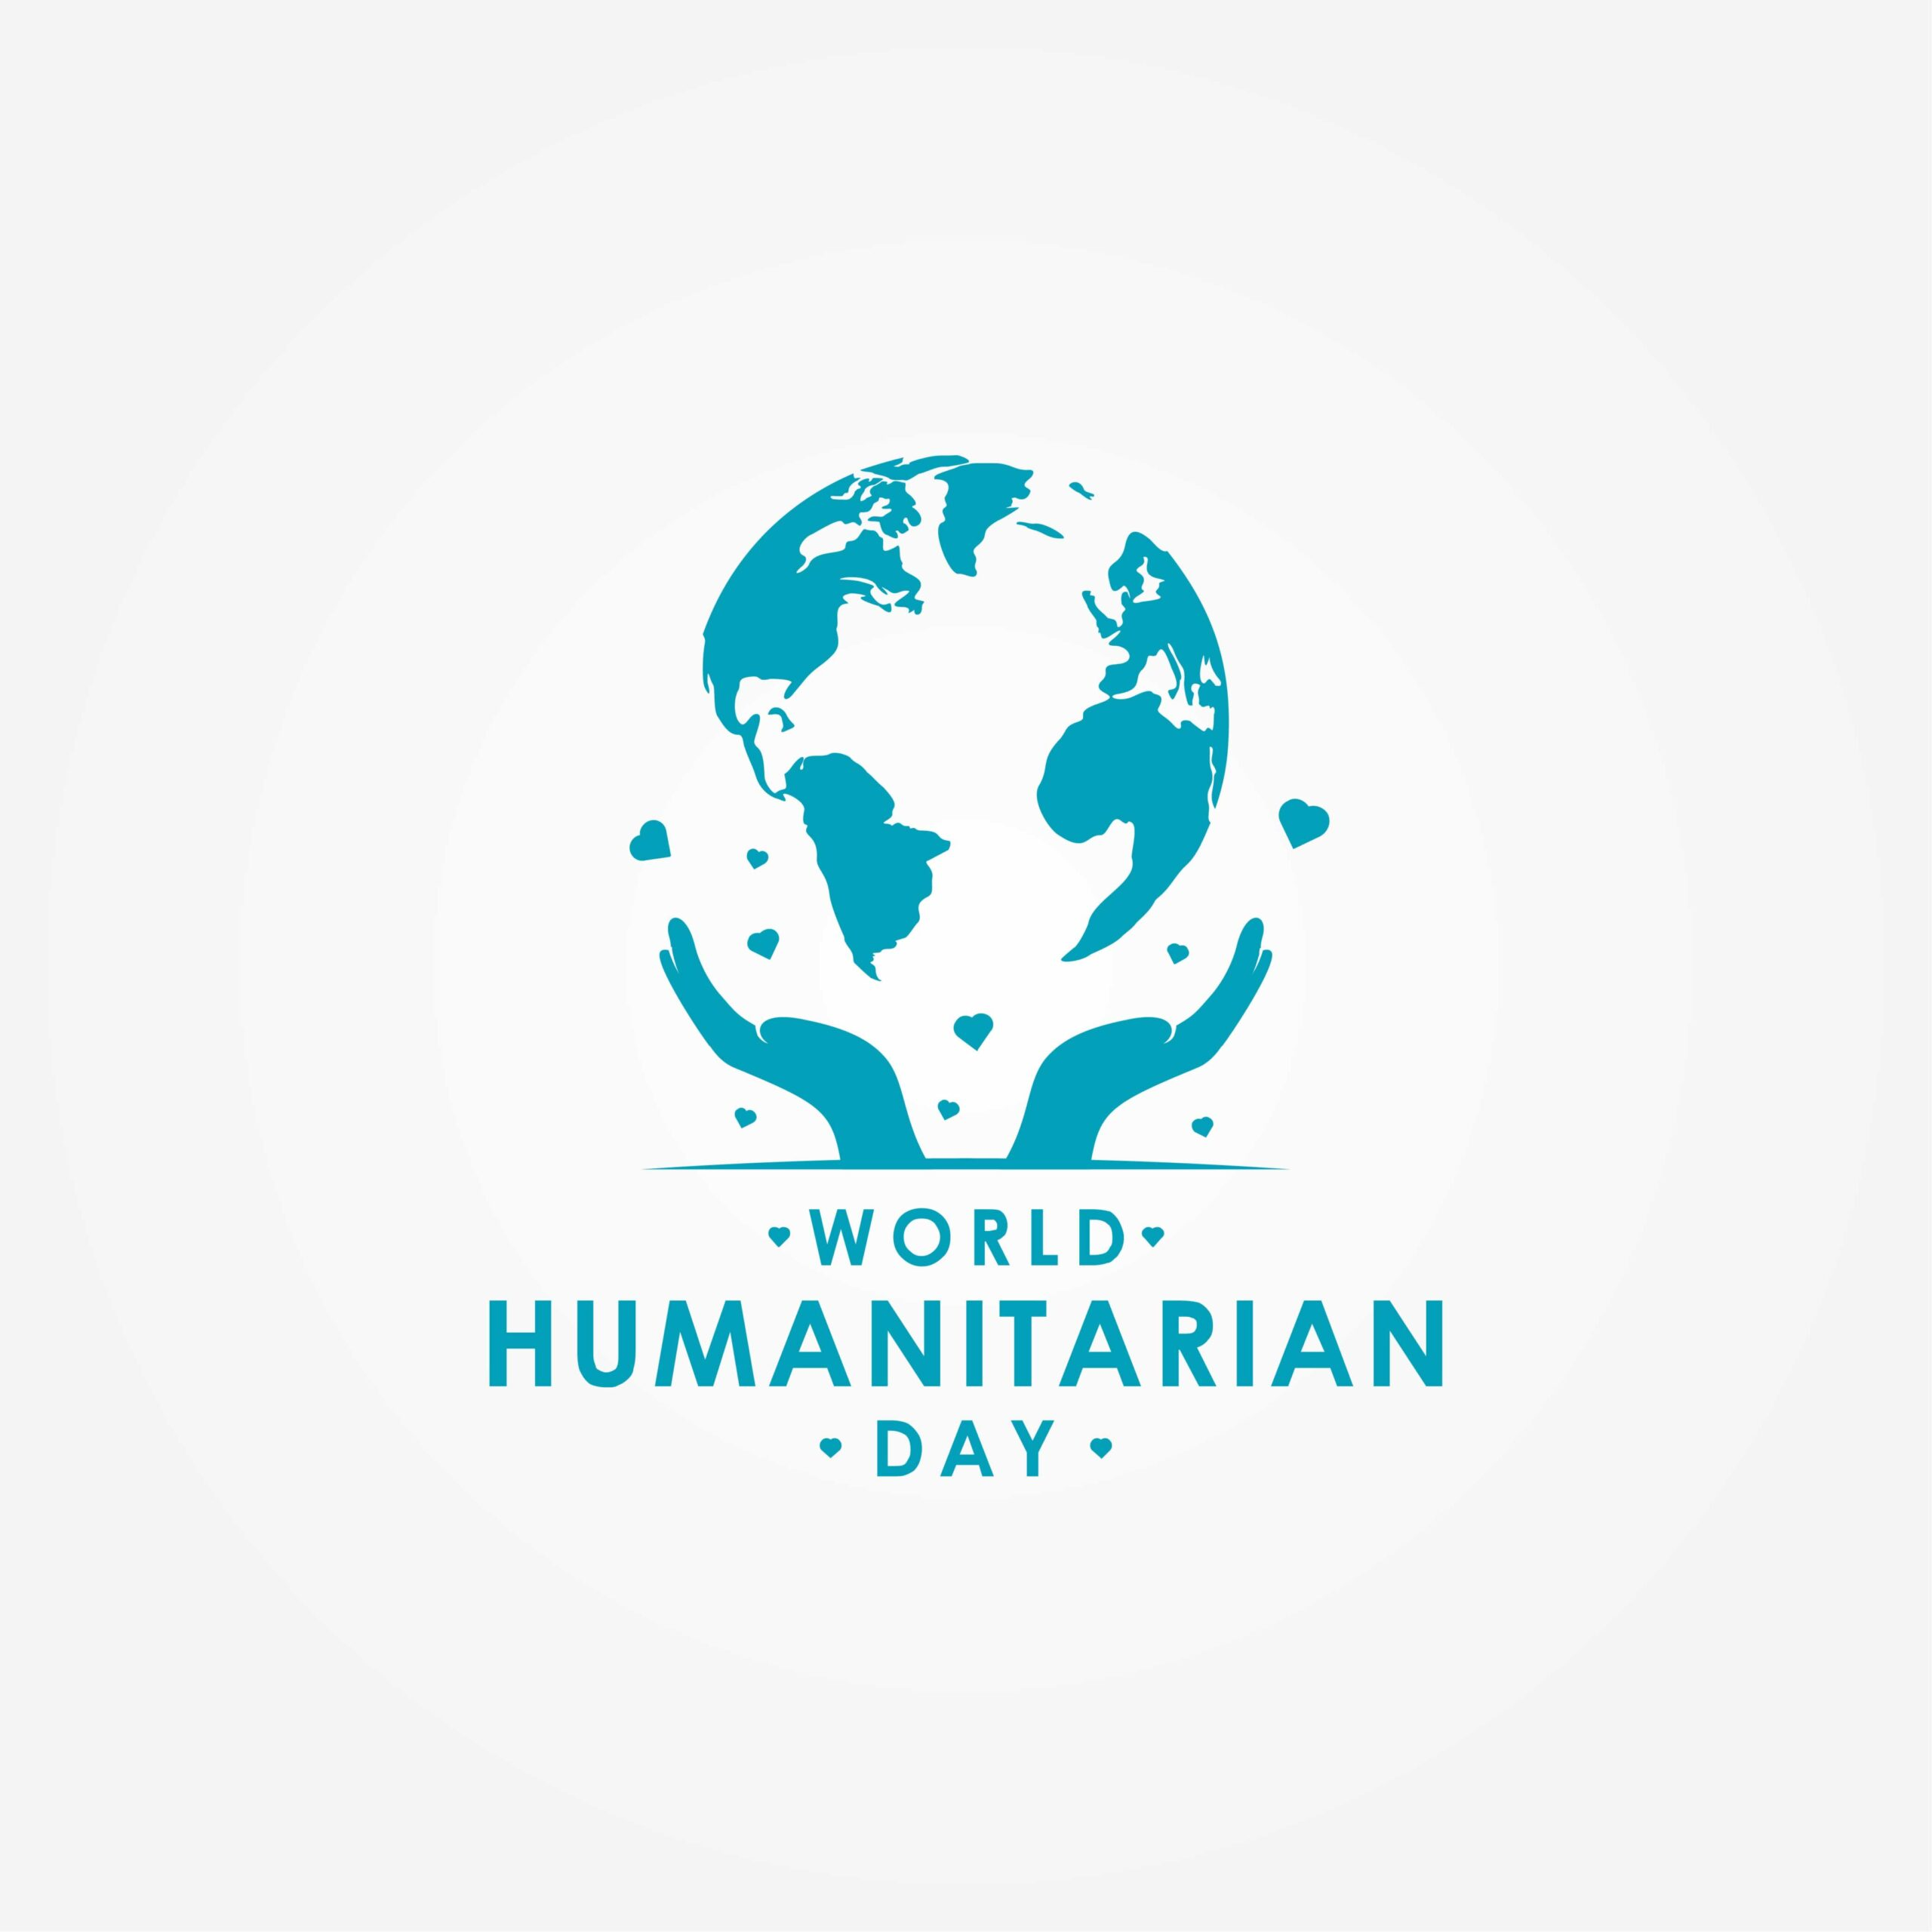 World Humanitarian Day: vector design with image of Globe